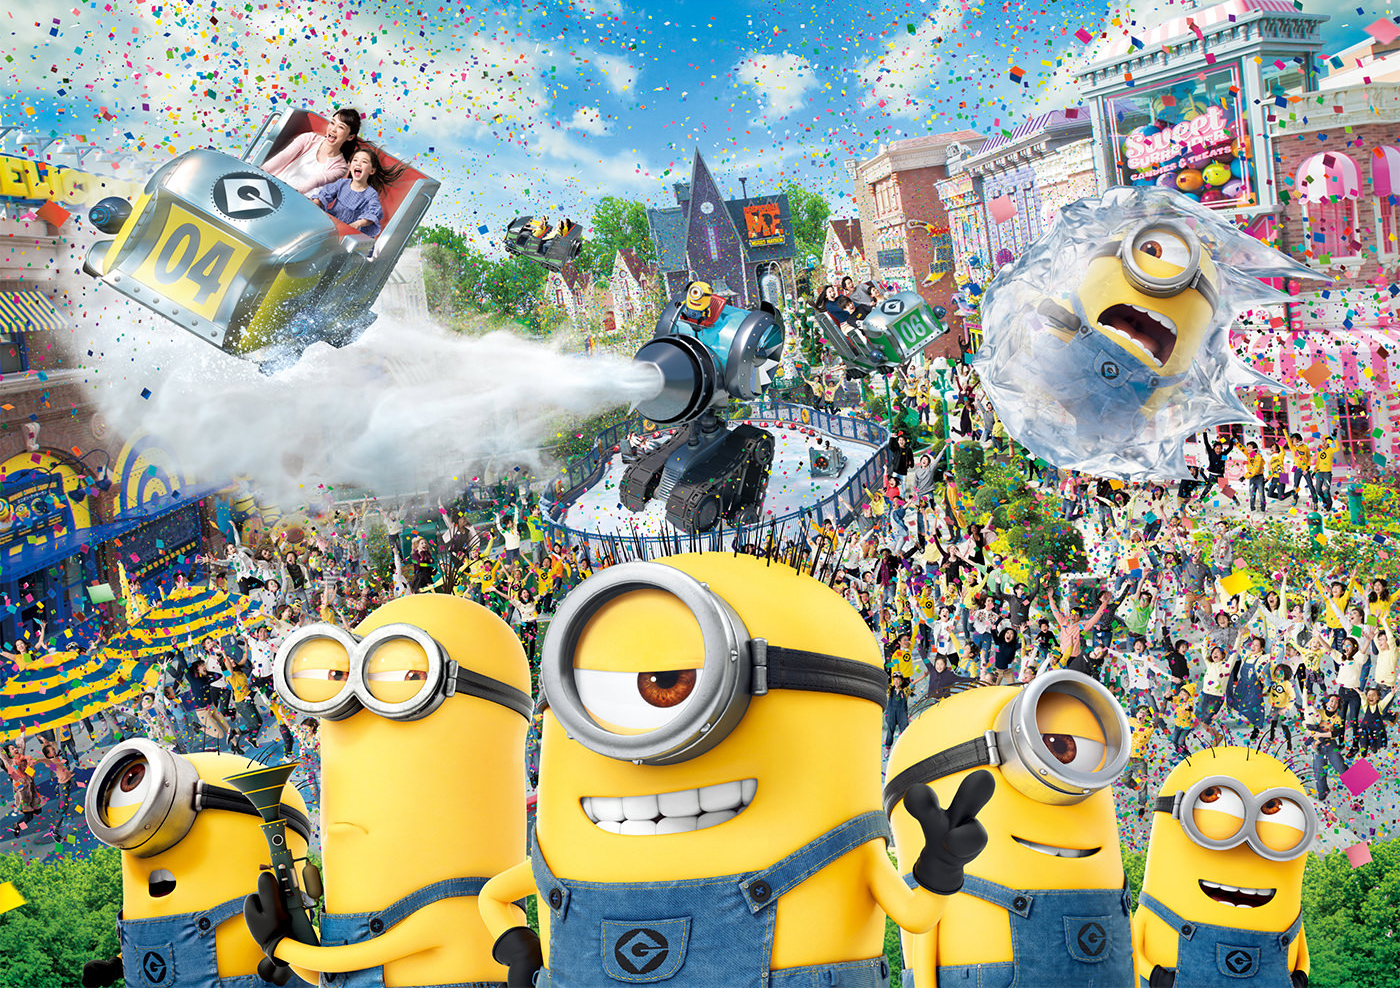 MinionPark Immerse yourself in the mayhem of the Minions at the world's largest Minions area, now open at Universal Studios Japan!